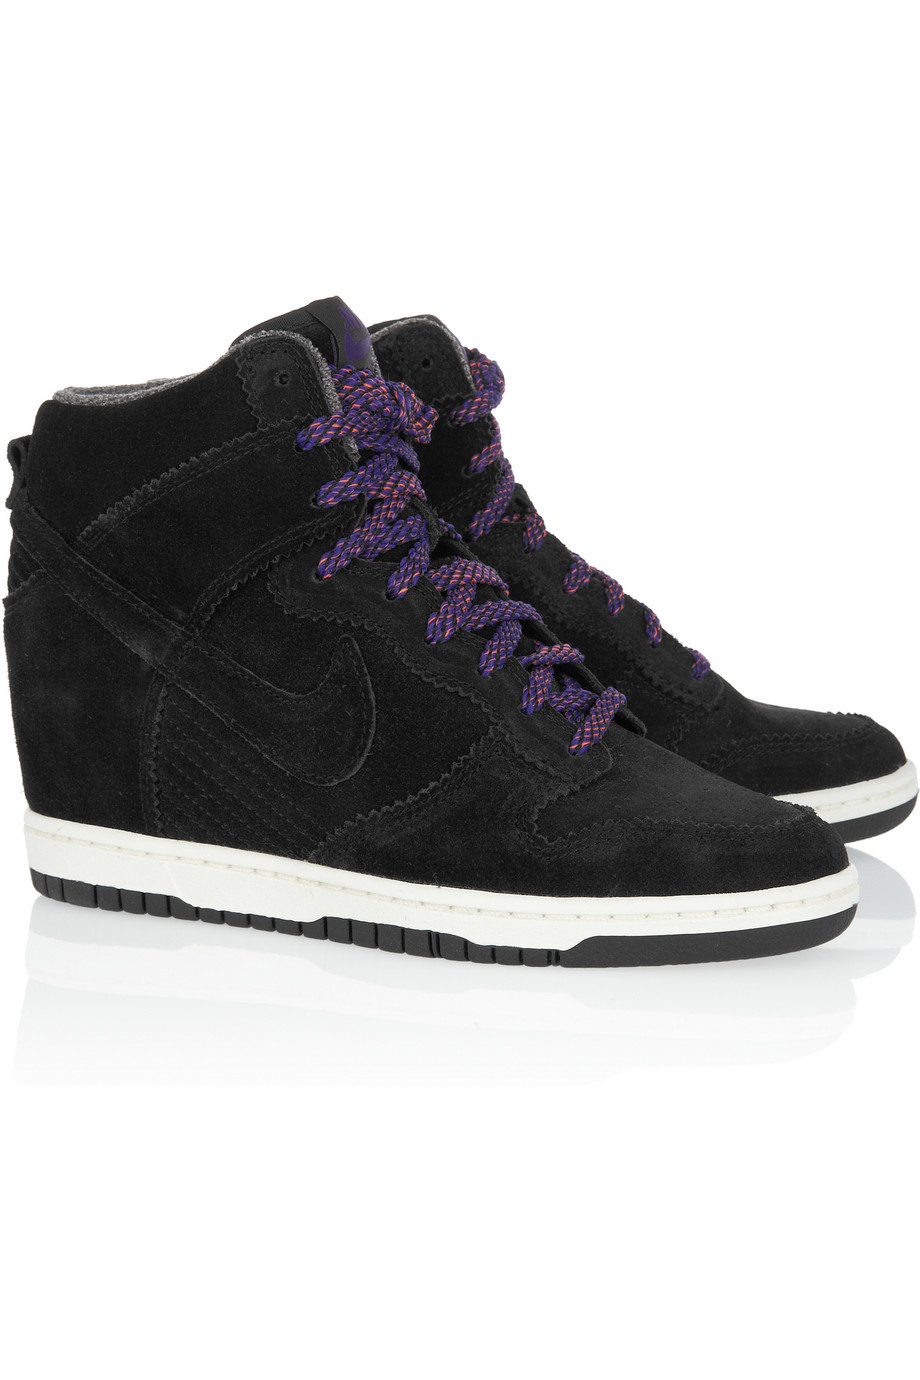 Nike Dunk Sky Hi Wedge Sneaker Women in Black (black ... |Wedges Sneakers Nike Black